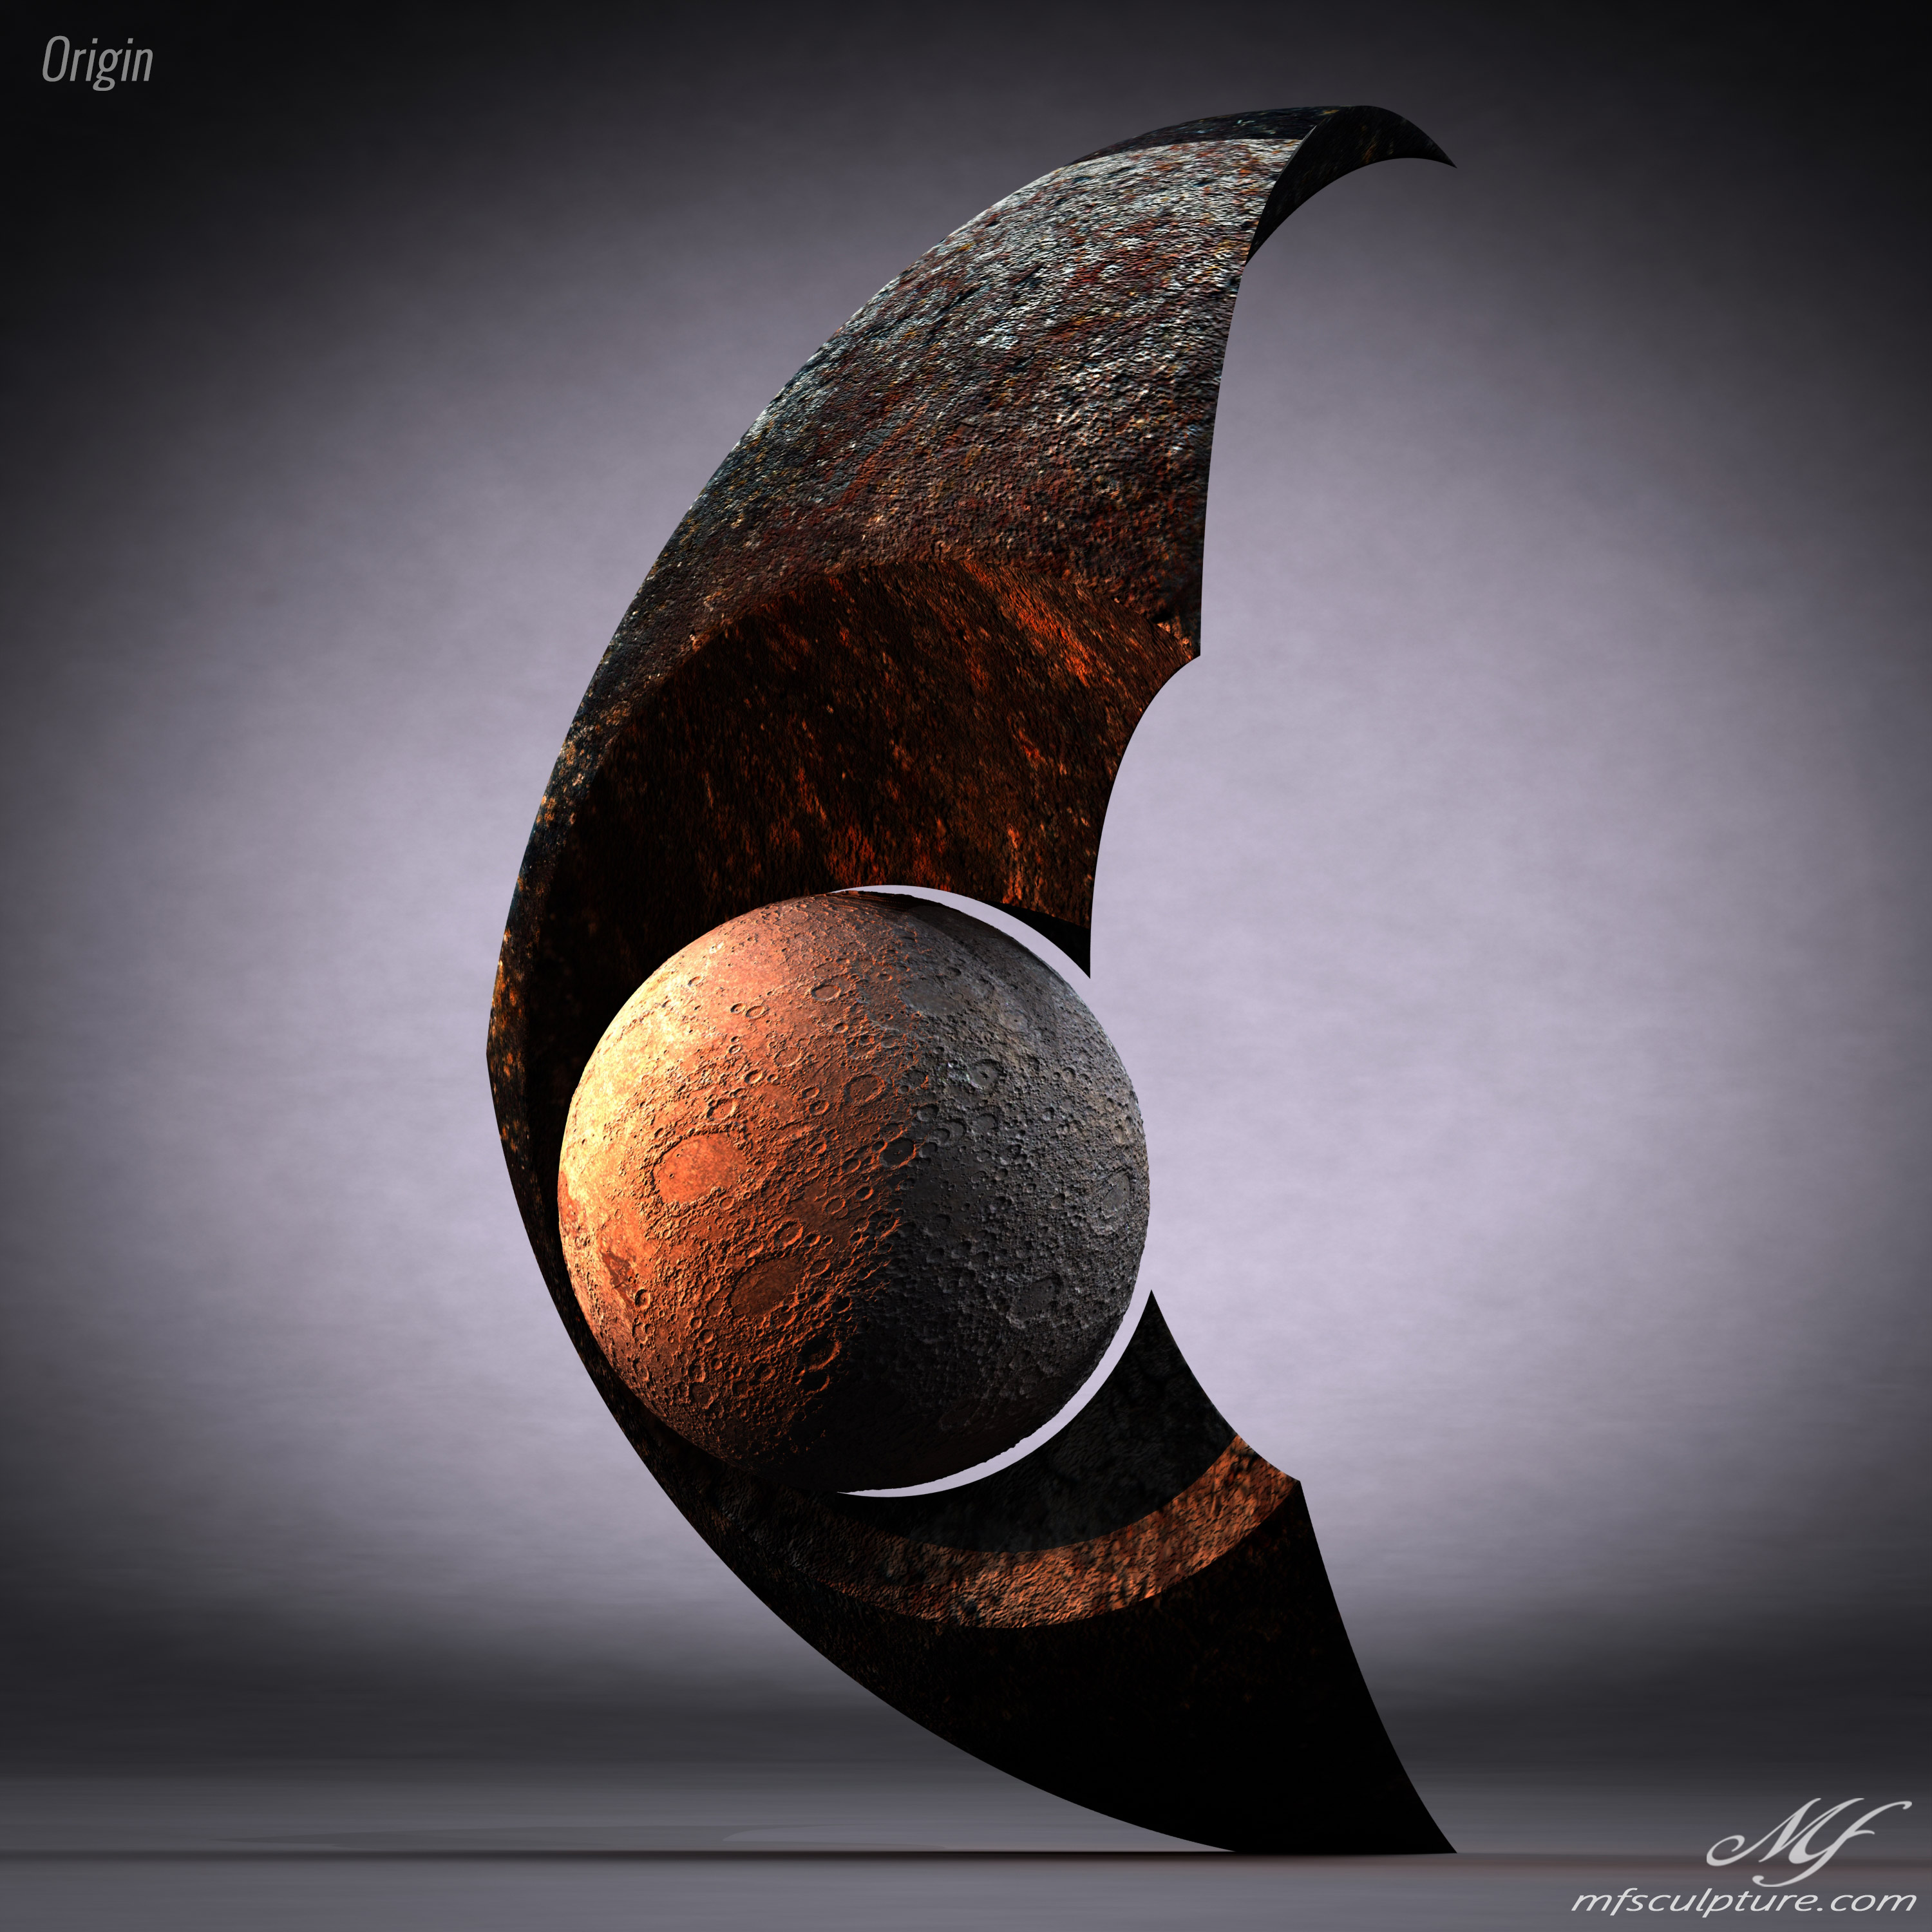 Origin Contemporary Sculpture Moon Eclipse Science 1 1